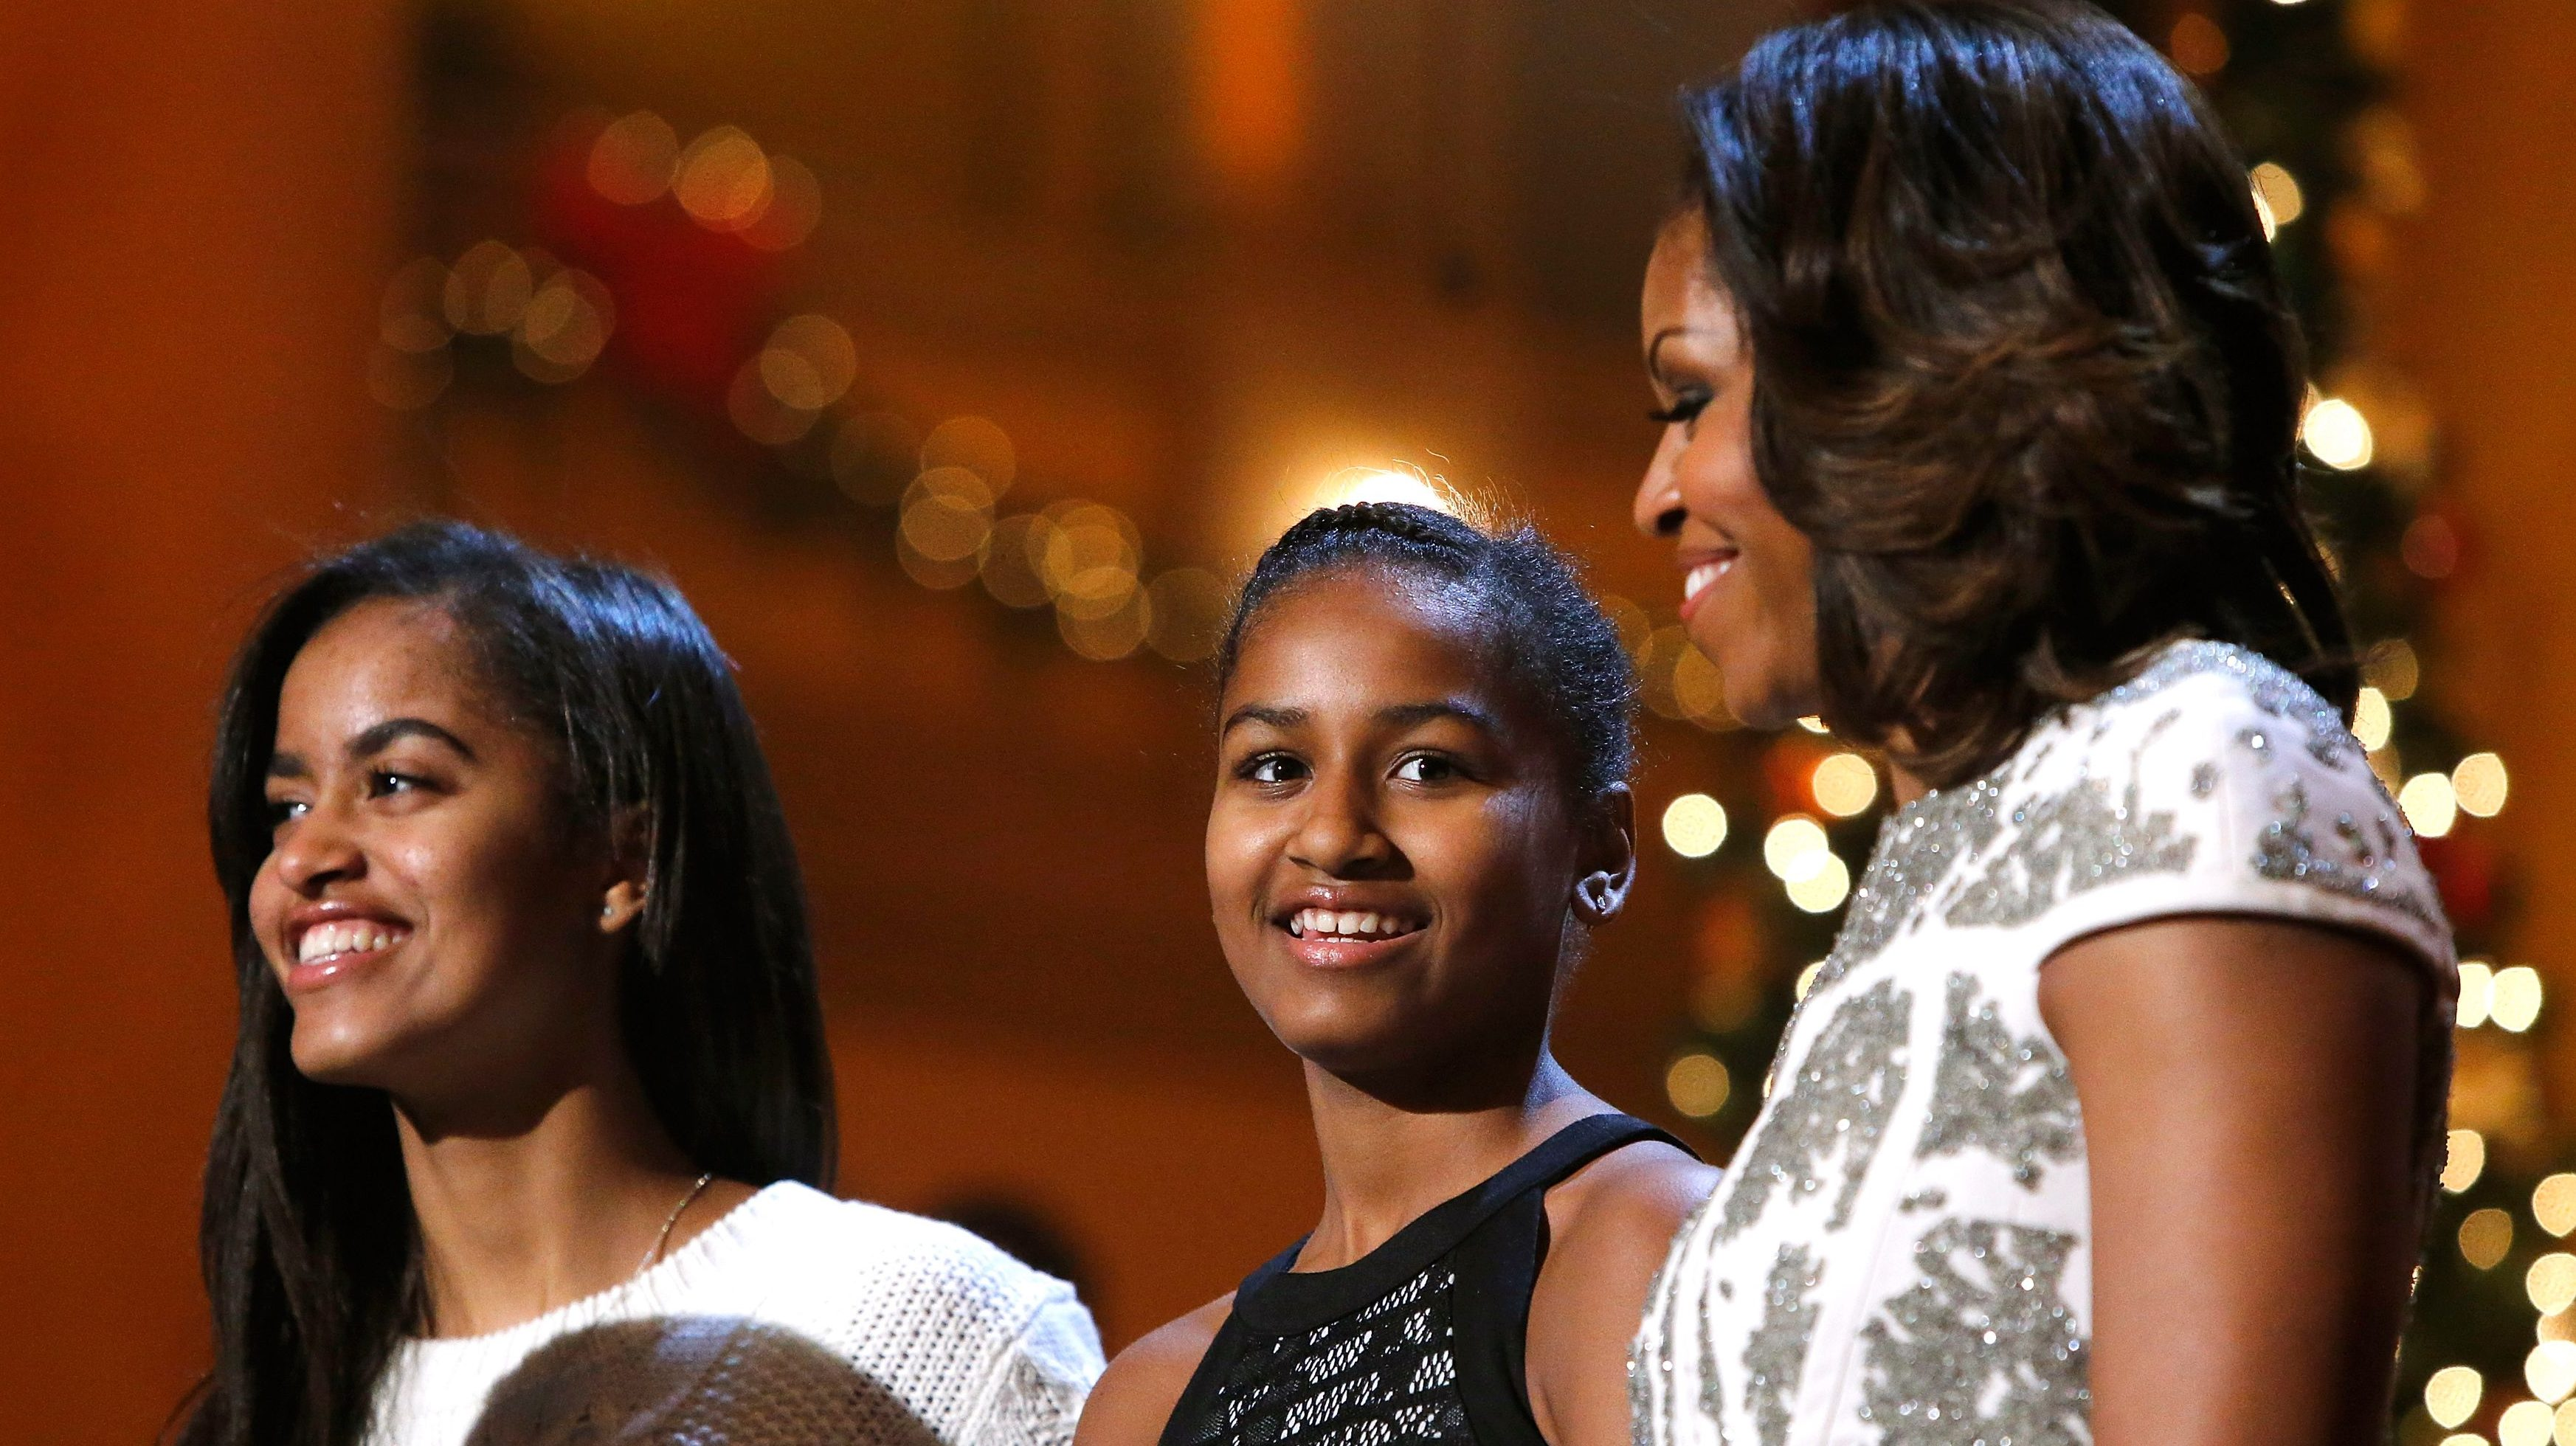 U.S. first lady Michelle Obama (R) and daughters Malia (L) and Sasha stand onstage during remarks by President Barack Obama for a taping of the Christmas in Washington television benefit program at the National Building Museum in Washington December 15, 2013.